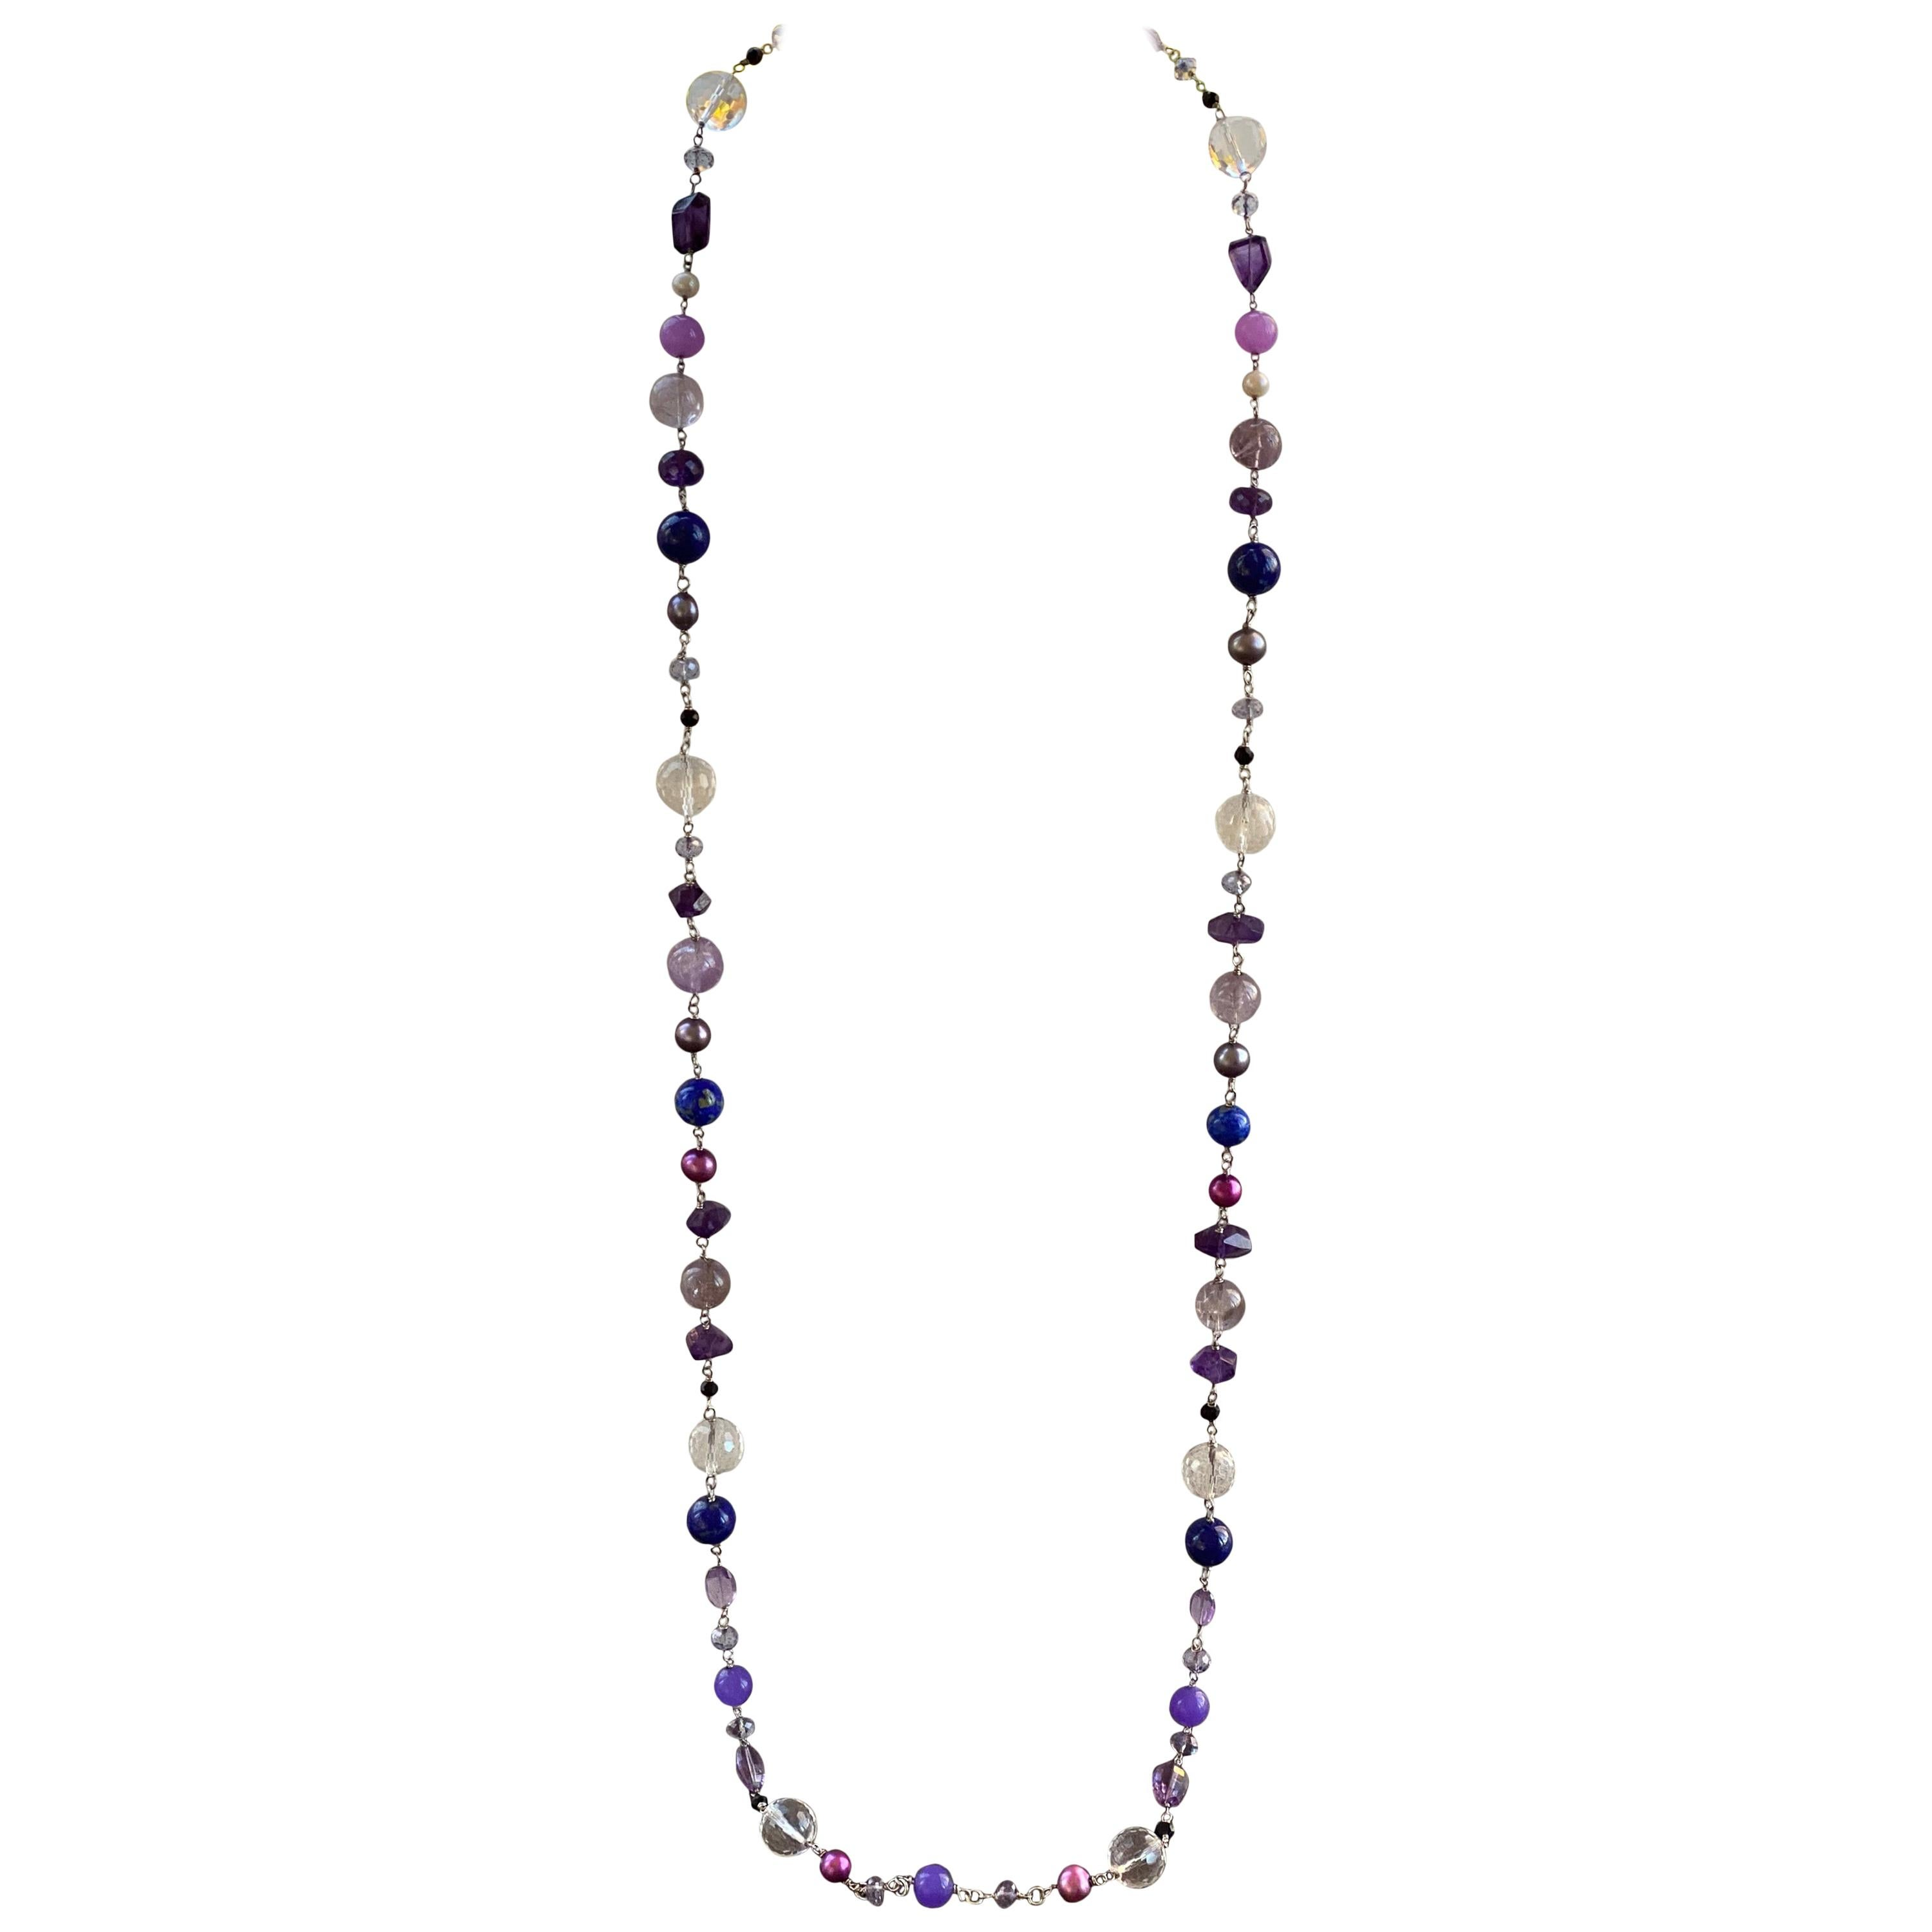 Amethyst Necklace,18 inch,Amethyst 6mm faceted beads,925 Silver clasp,statement necklace,necklace for women